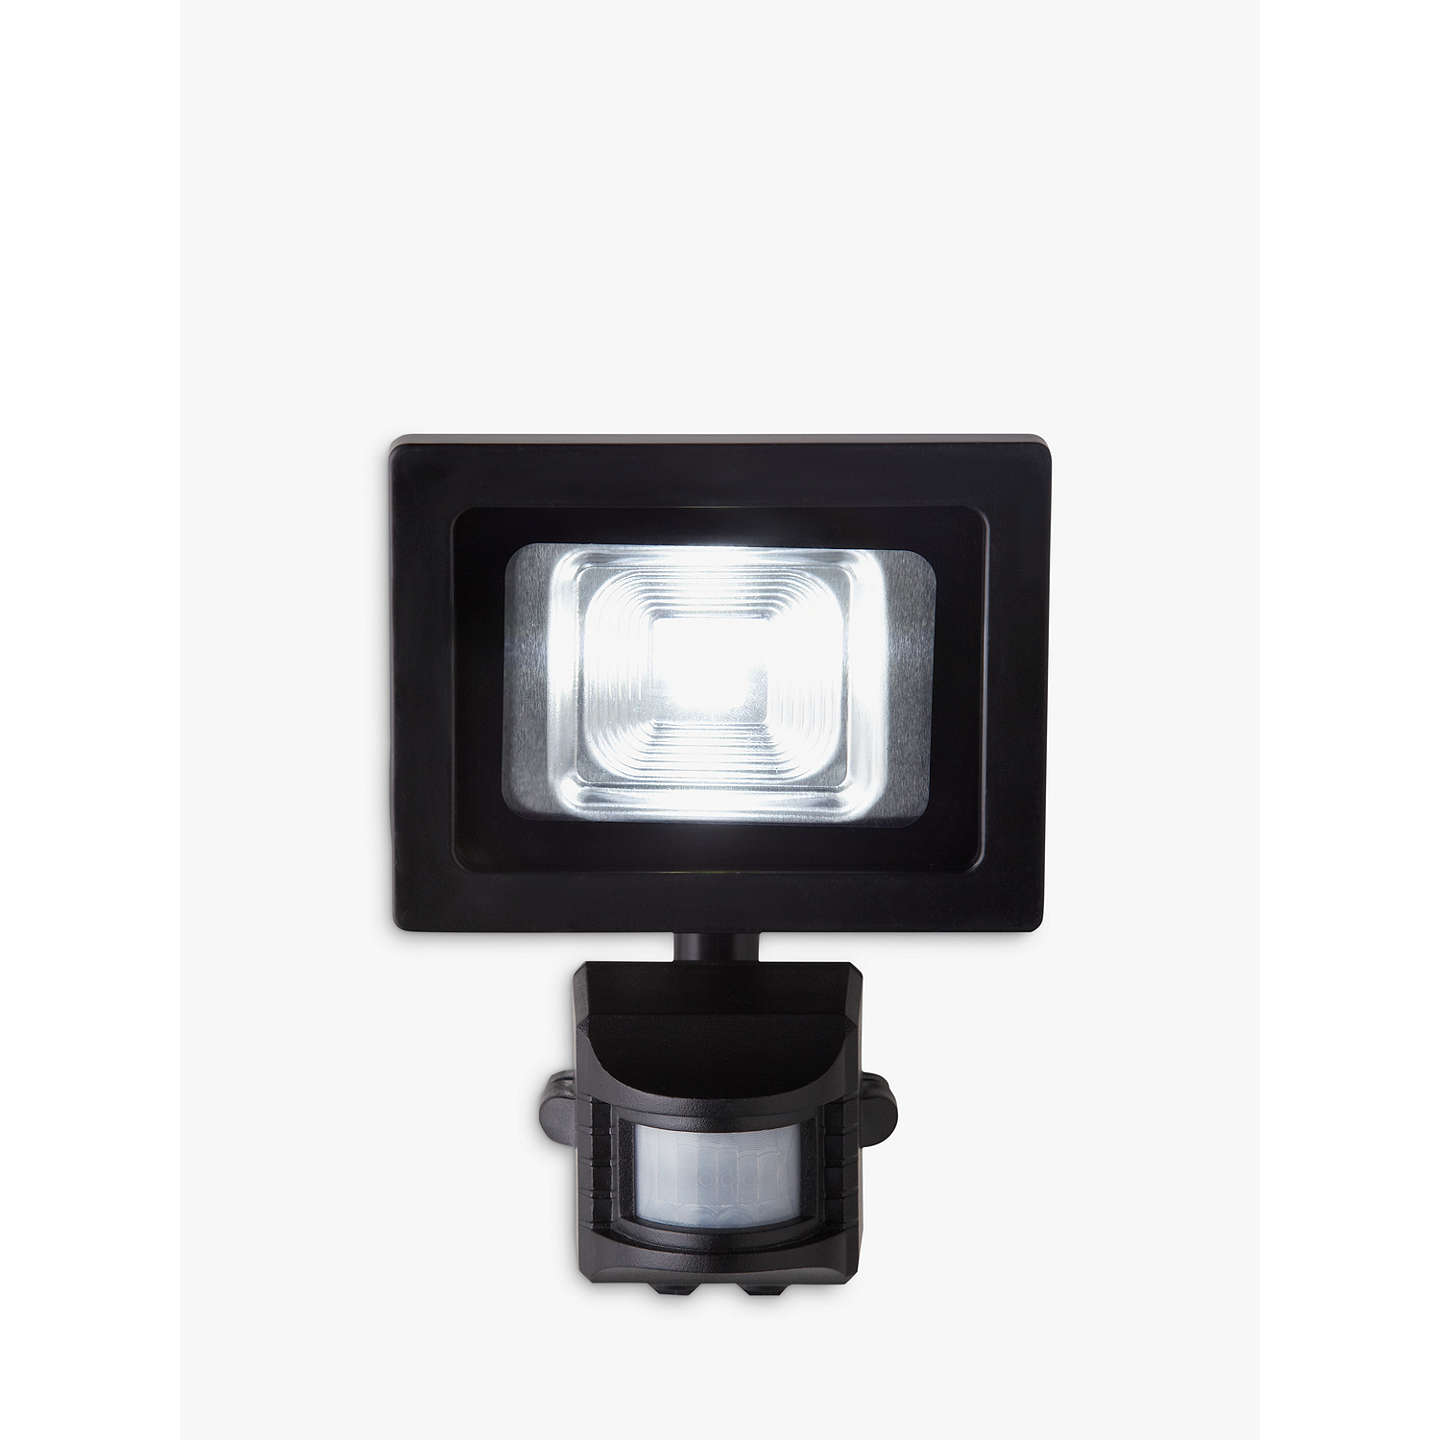 John lewis seleno pir sensor security led outdoor light black at buyjohn lewis seleno pir sensor security led outdoor light black online at johnlewis mozeypictures Image collections